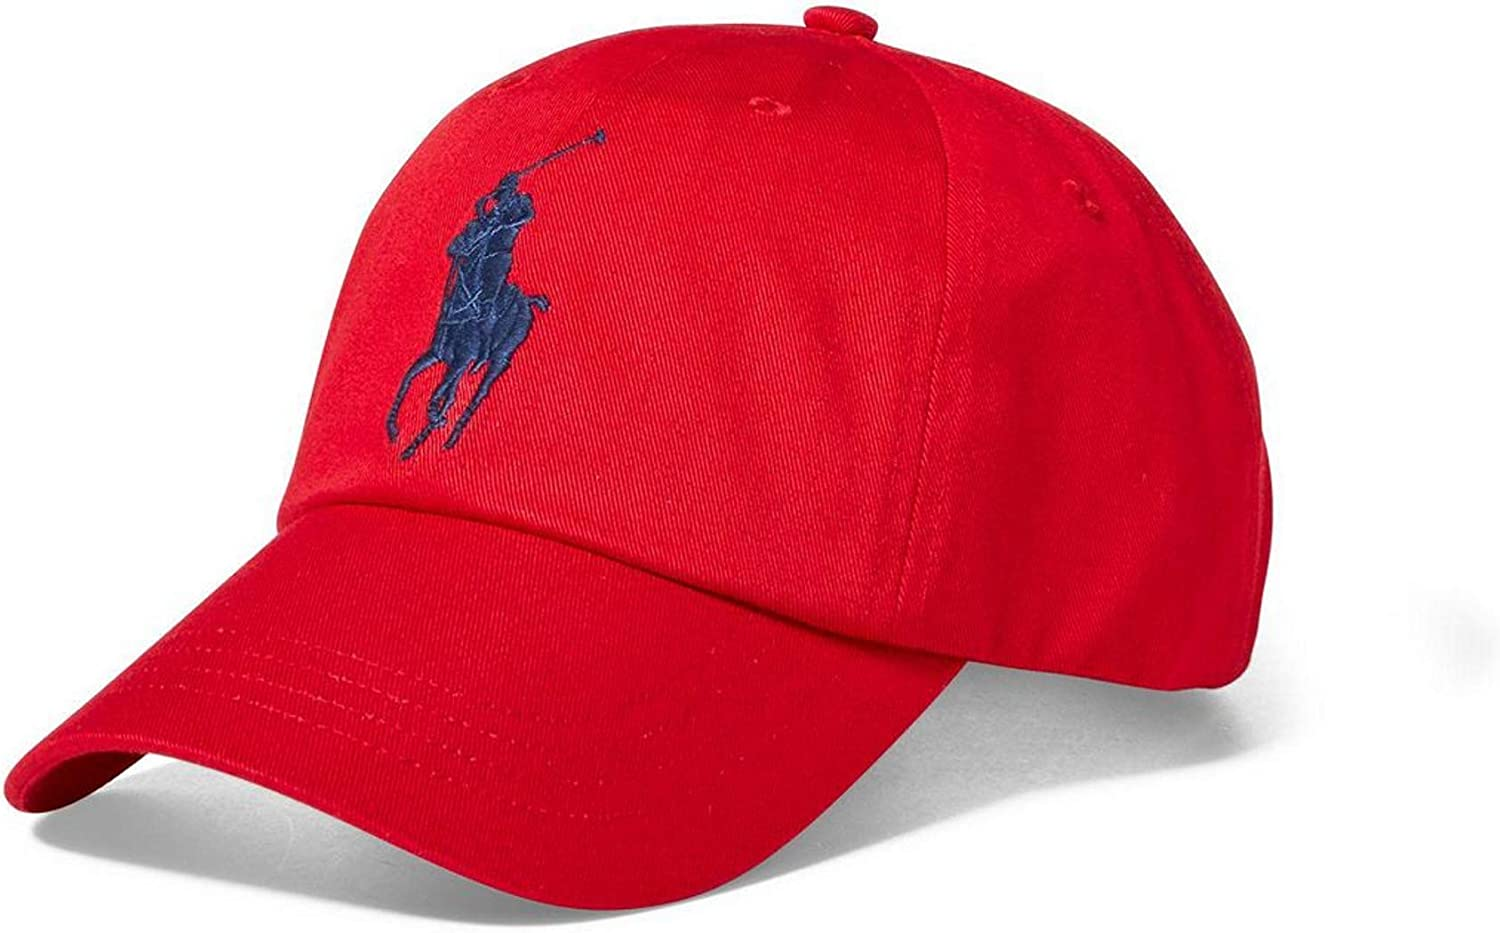 Ralph Lauren Polo Boys Big Pony Chino Sports Cap 2T-4T